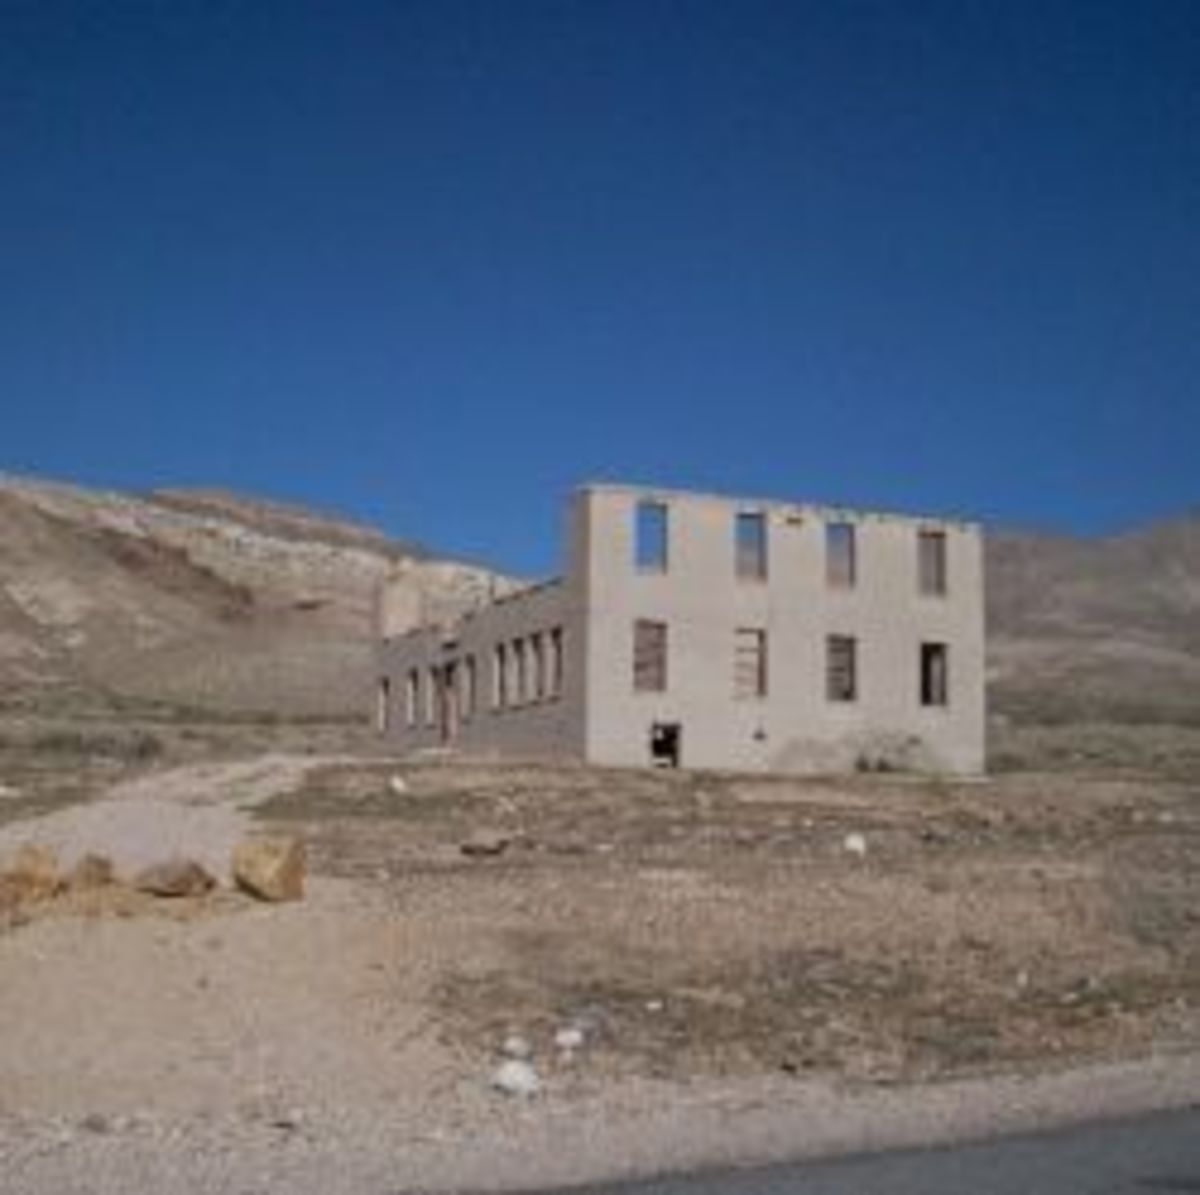 An old building in Rhyolite Ghost Town